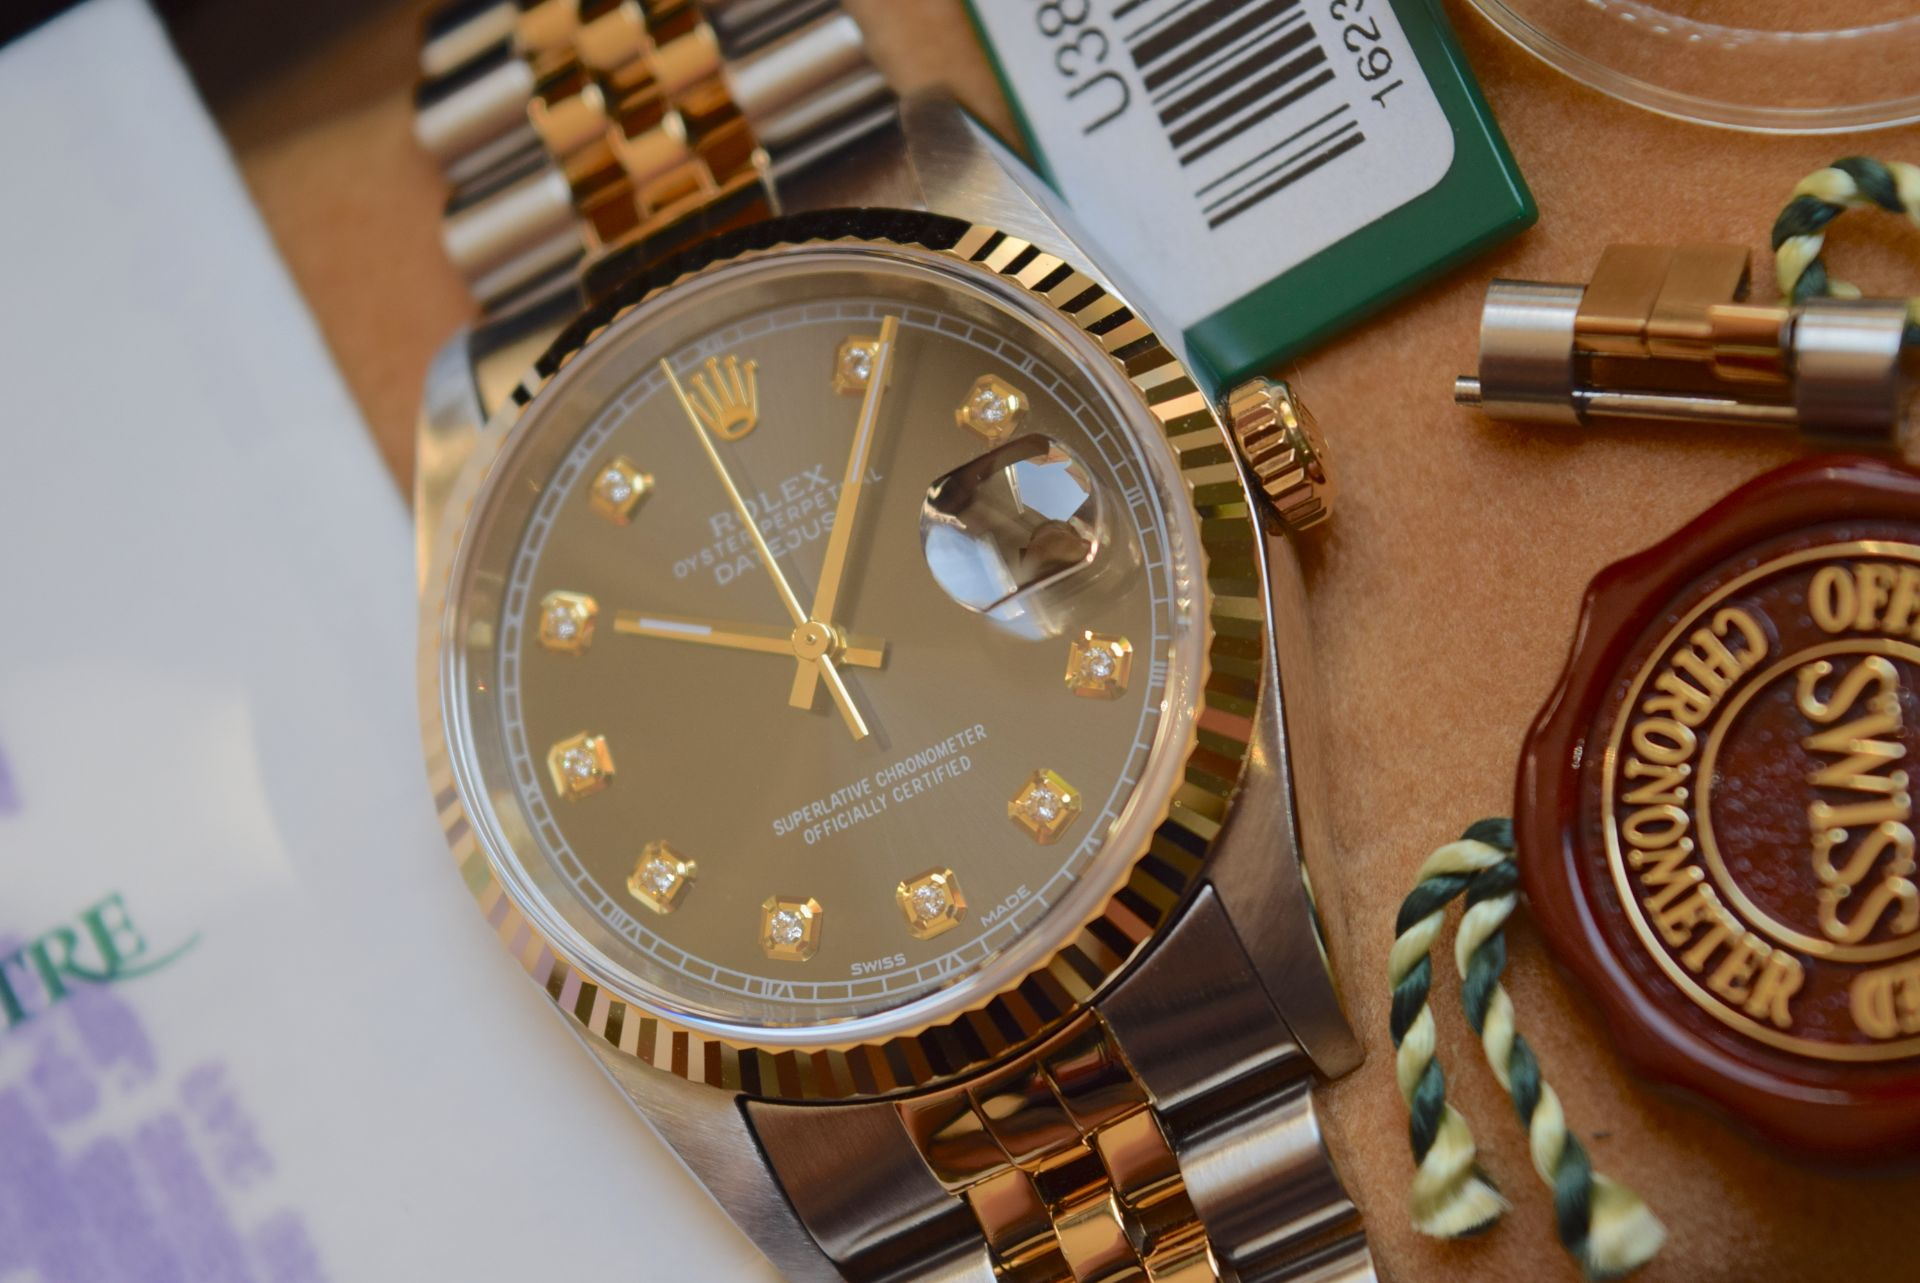 18CT GOLD/ STEEL ROLEX DATEJUST - 36MM, MENS (COMPLETE SET INC BOX, PAPERS, TAGS ETC) - Image 5 of 25